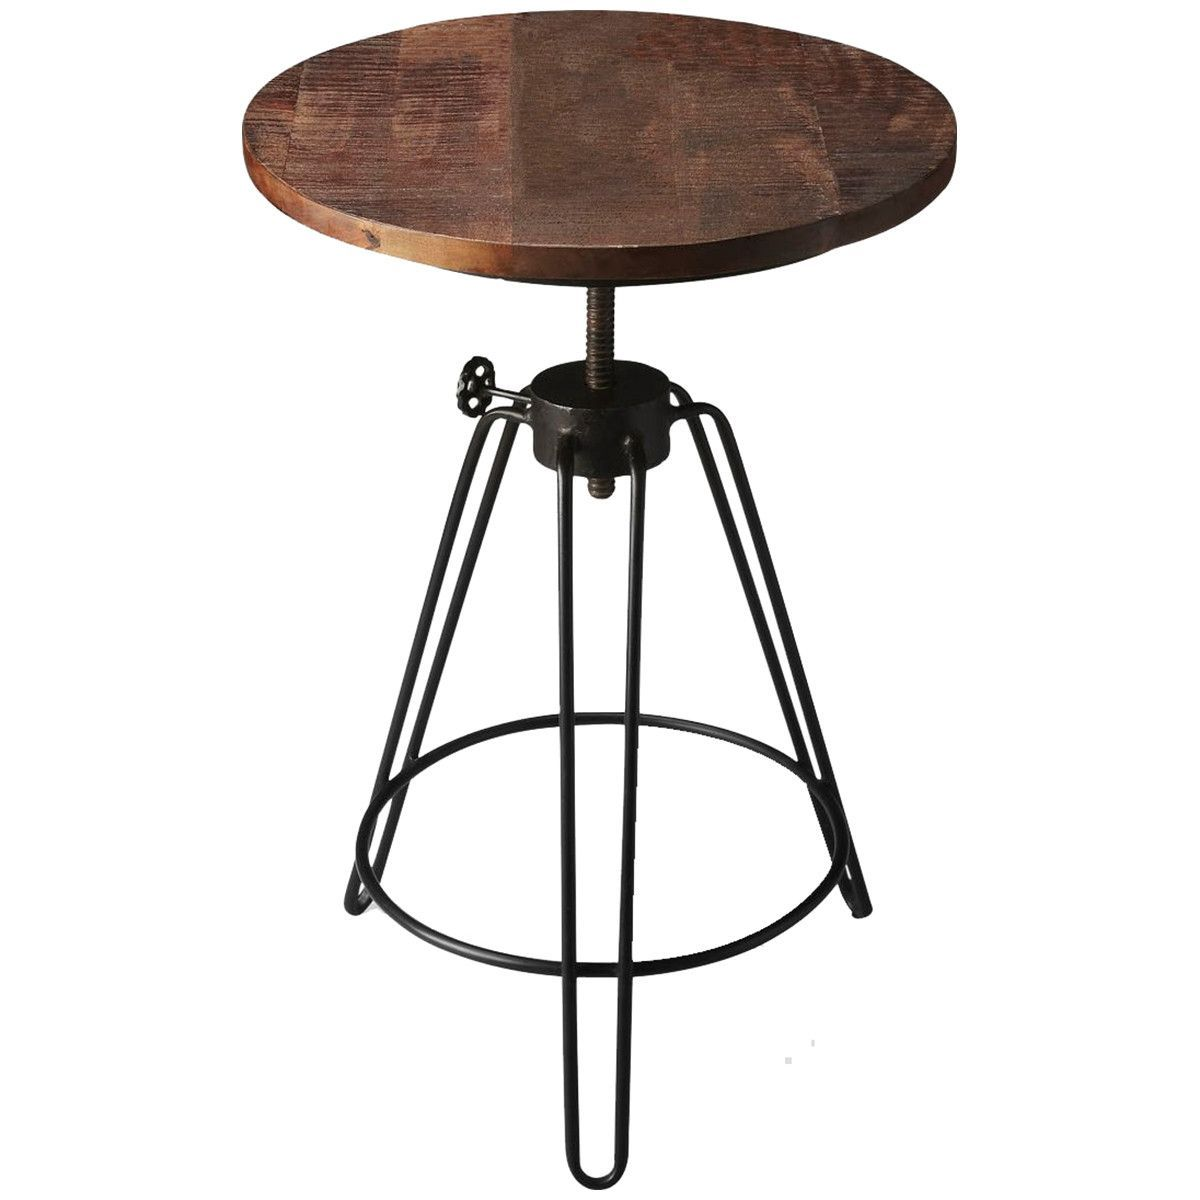 butler specialty industrial chic accent table products vintage asian lamps pottery barn farmhouse bunnings outdoor dining furniture living room console cabinets basket end wrought